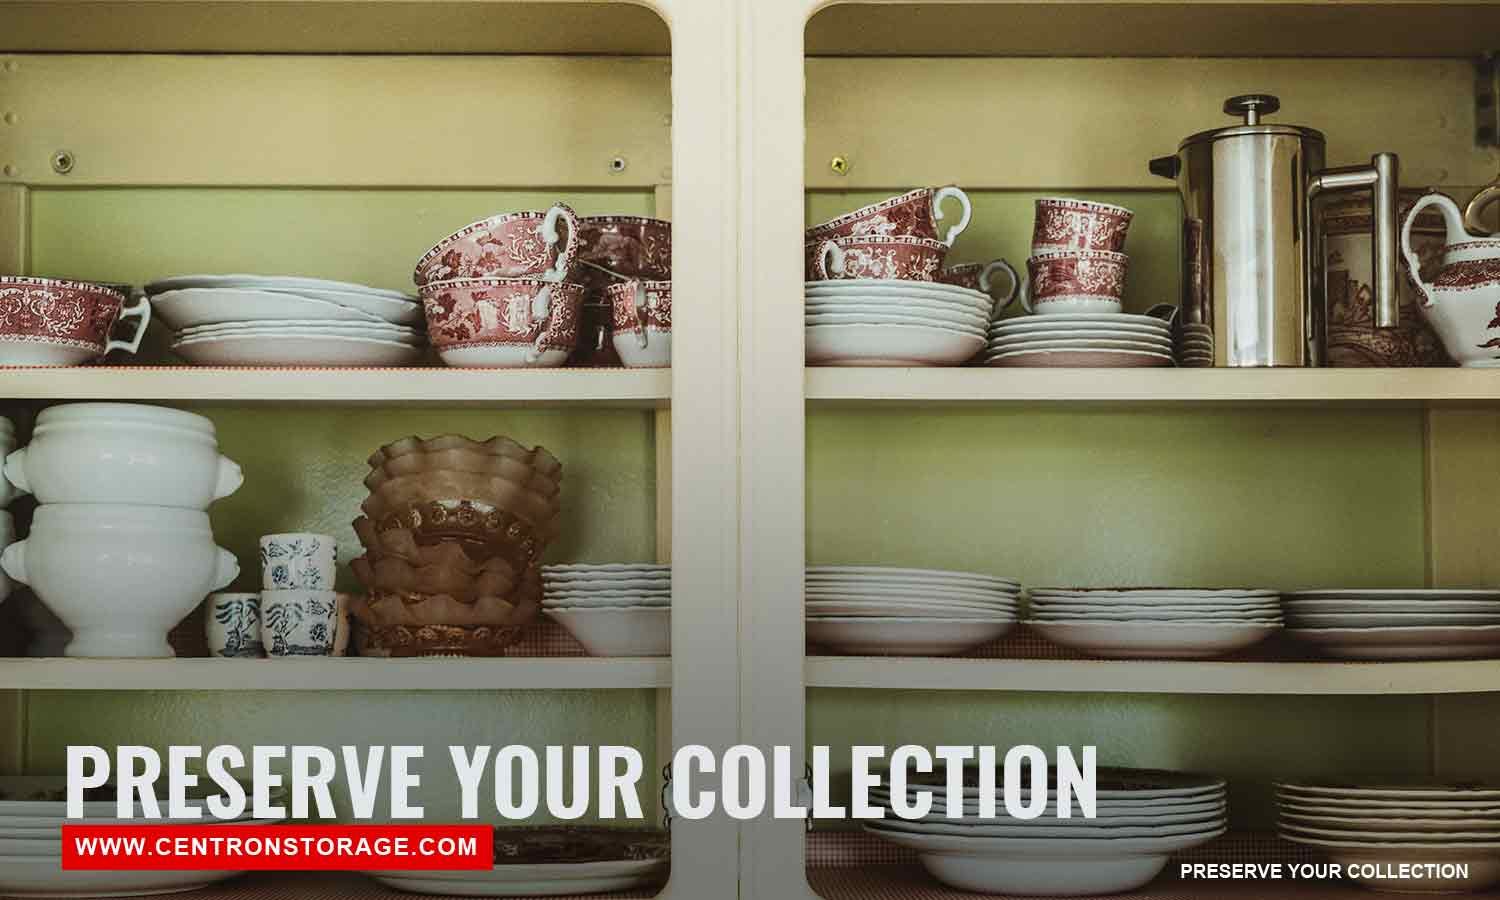 Preserve your collection